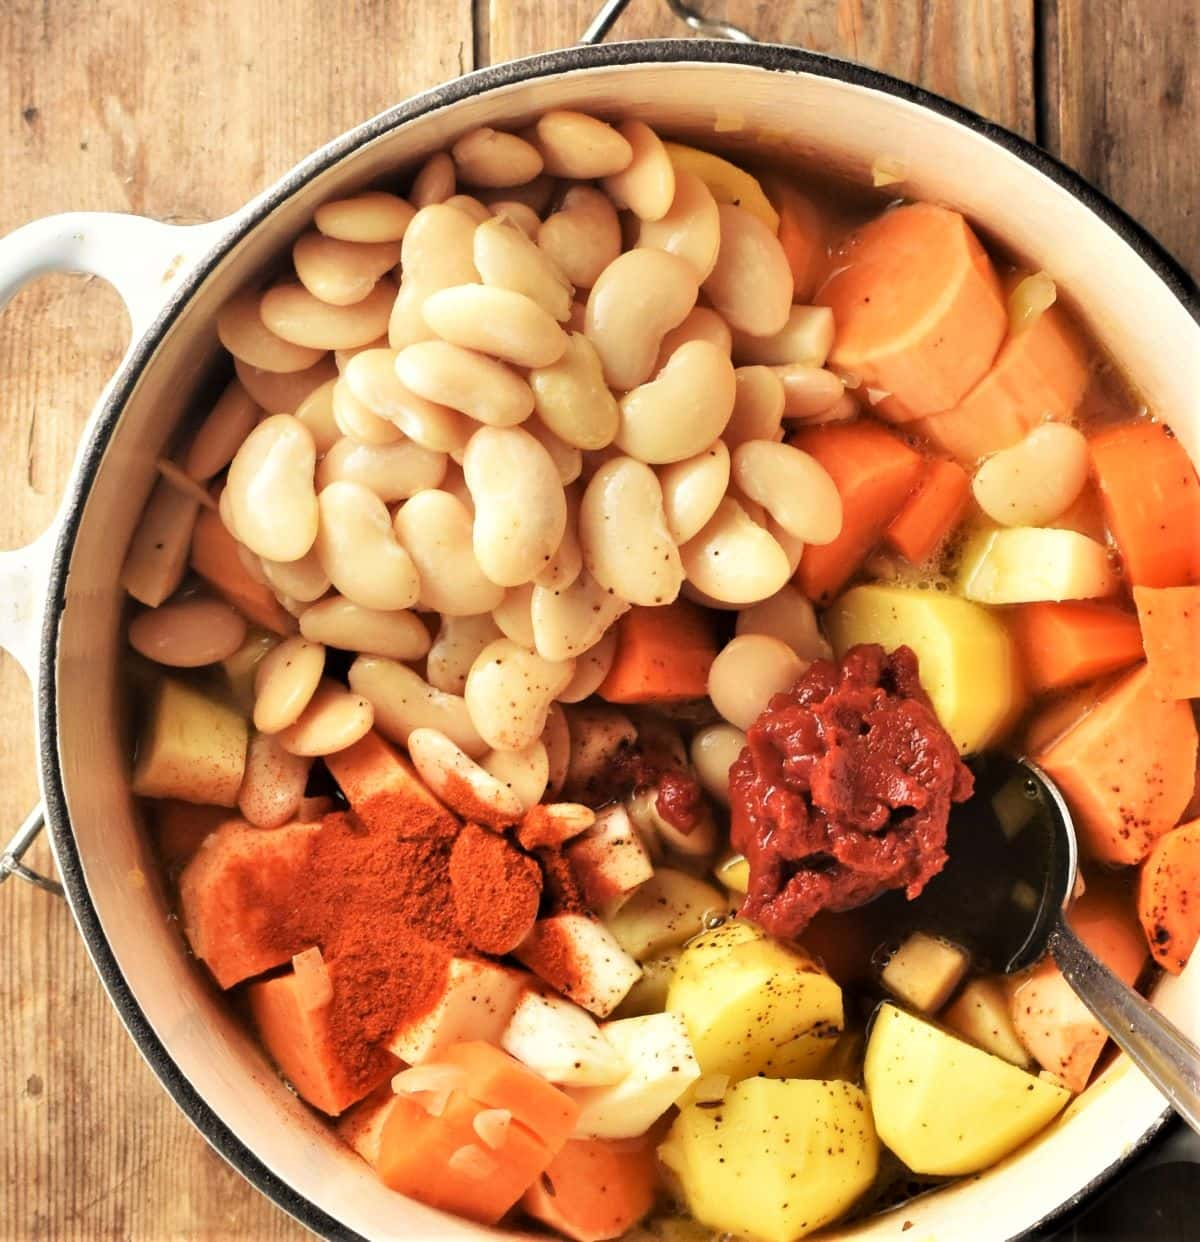 Assembling root vegetables, beans and spices in large pot with spoon.